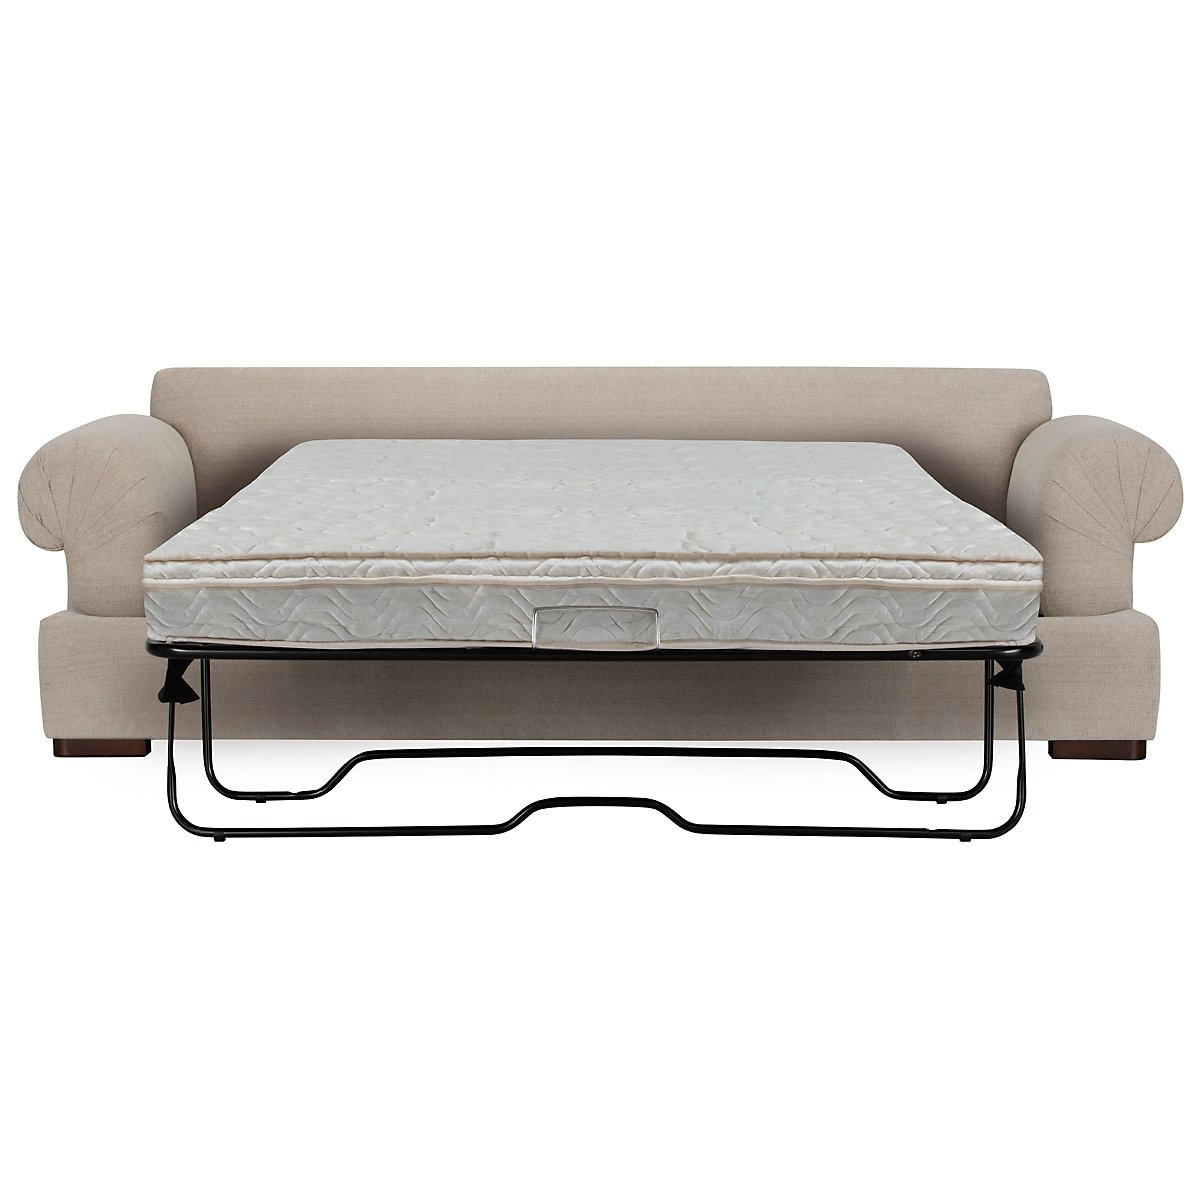 Belair Light Taupe Fabric Innerspring Sleeper